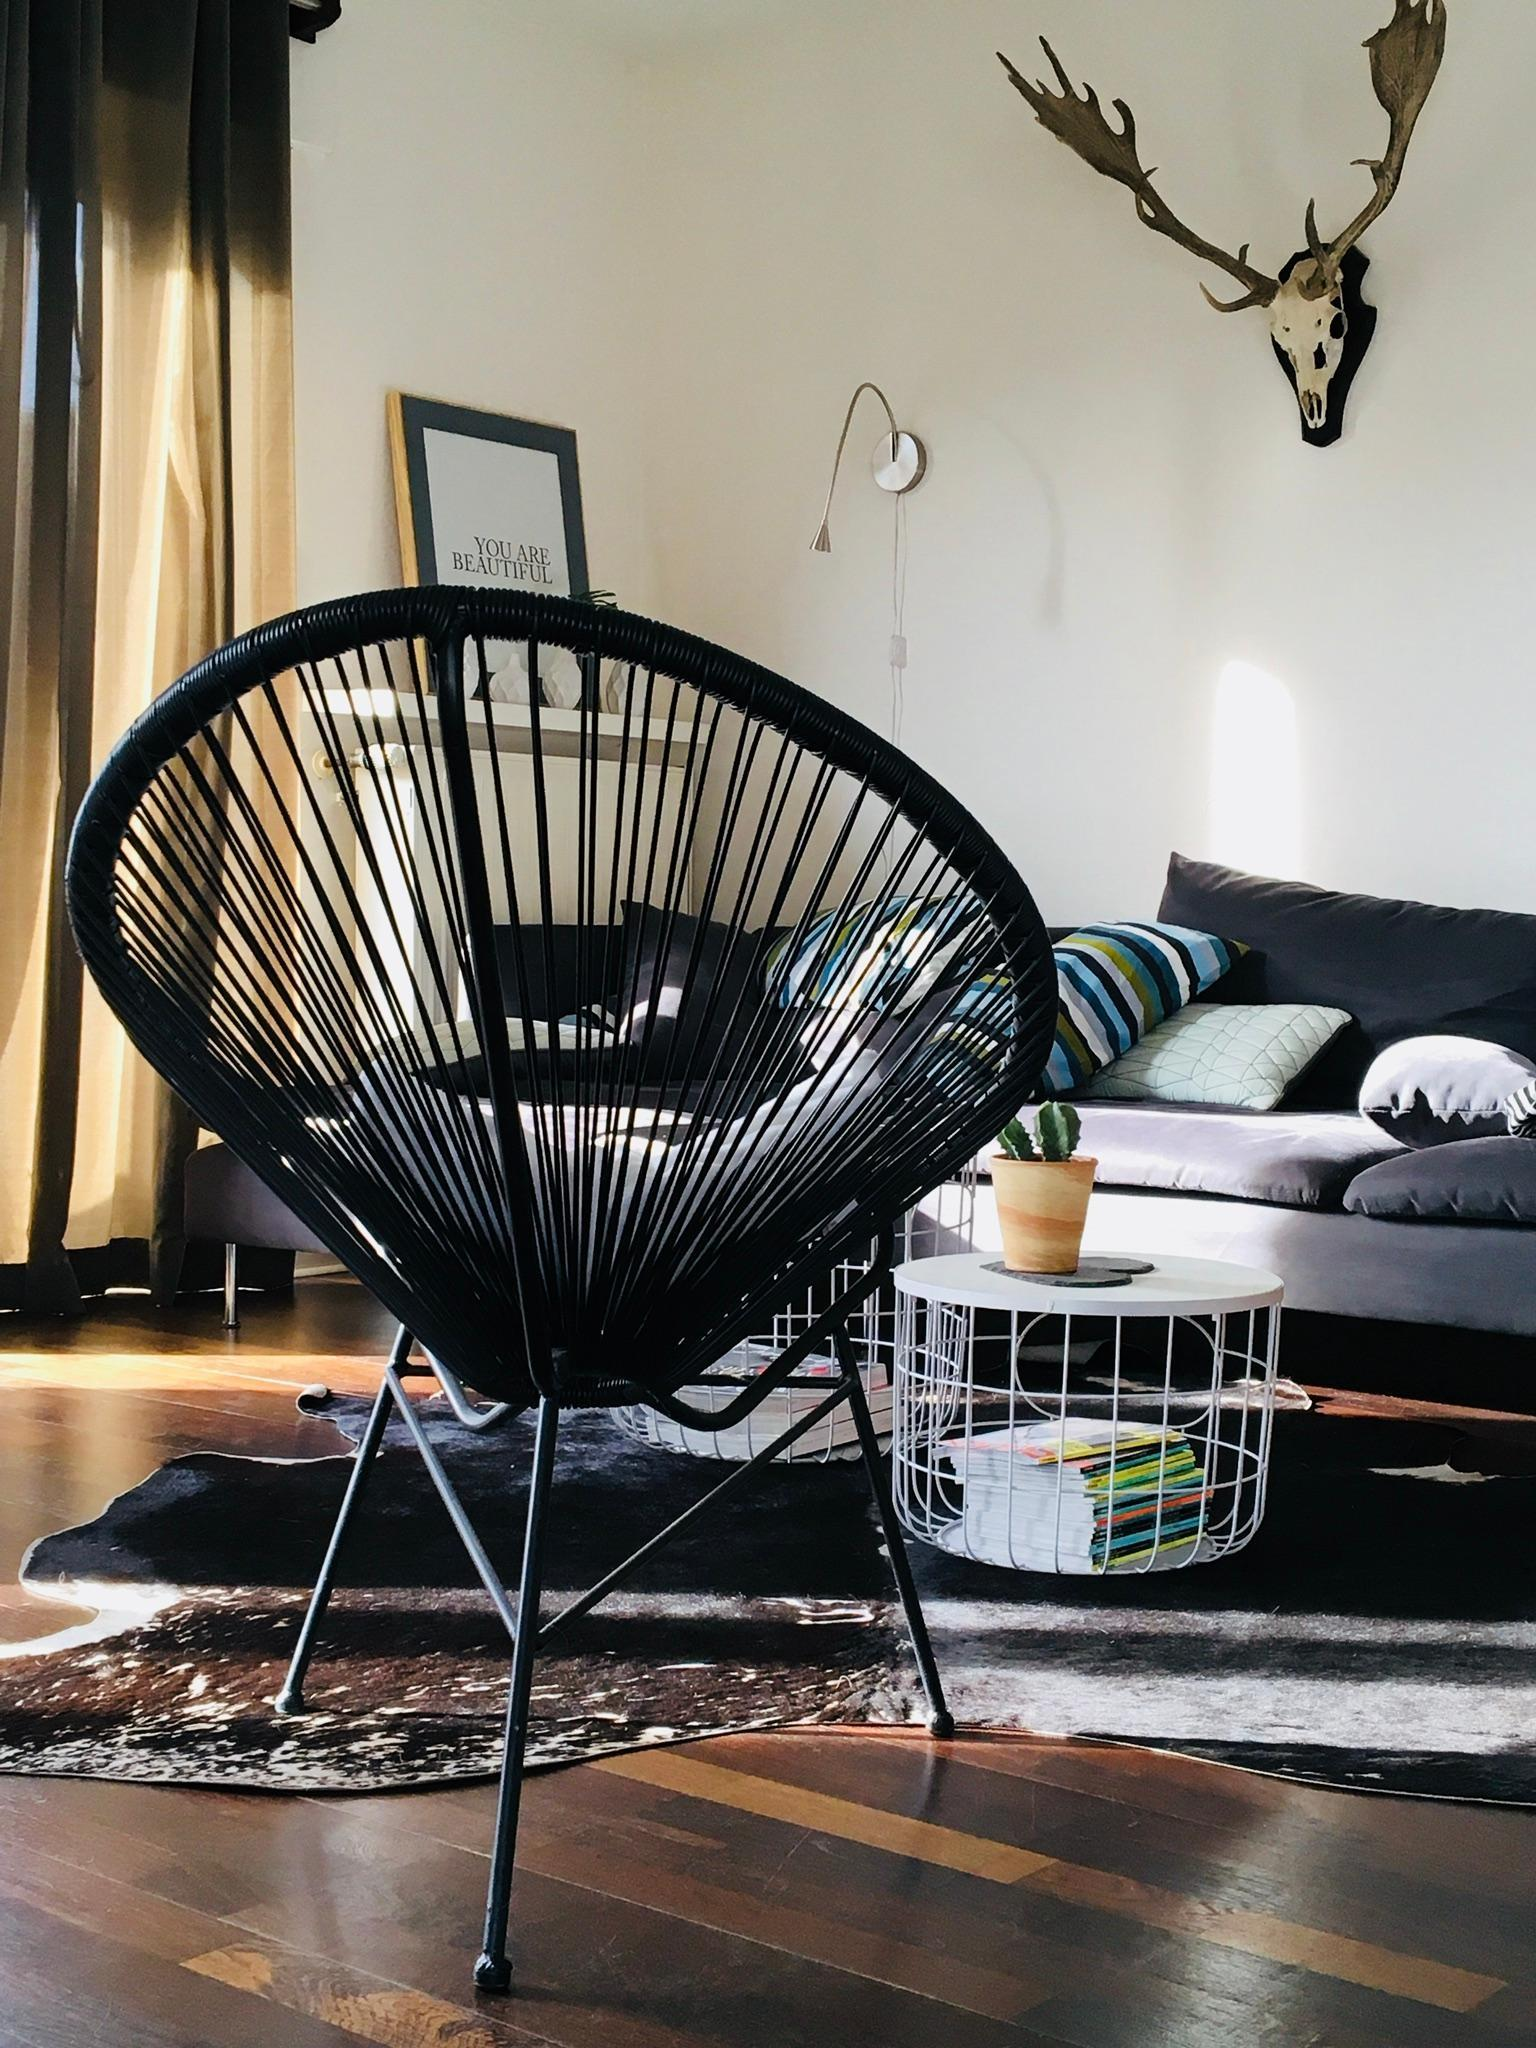 #livingroom #living #home #homedesign #interior #solebich #couchstyle